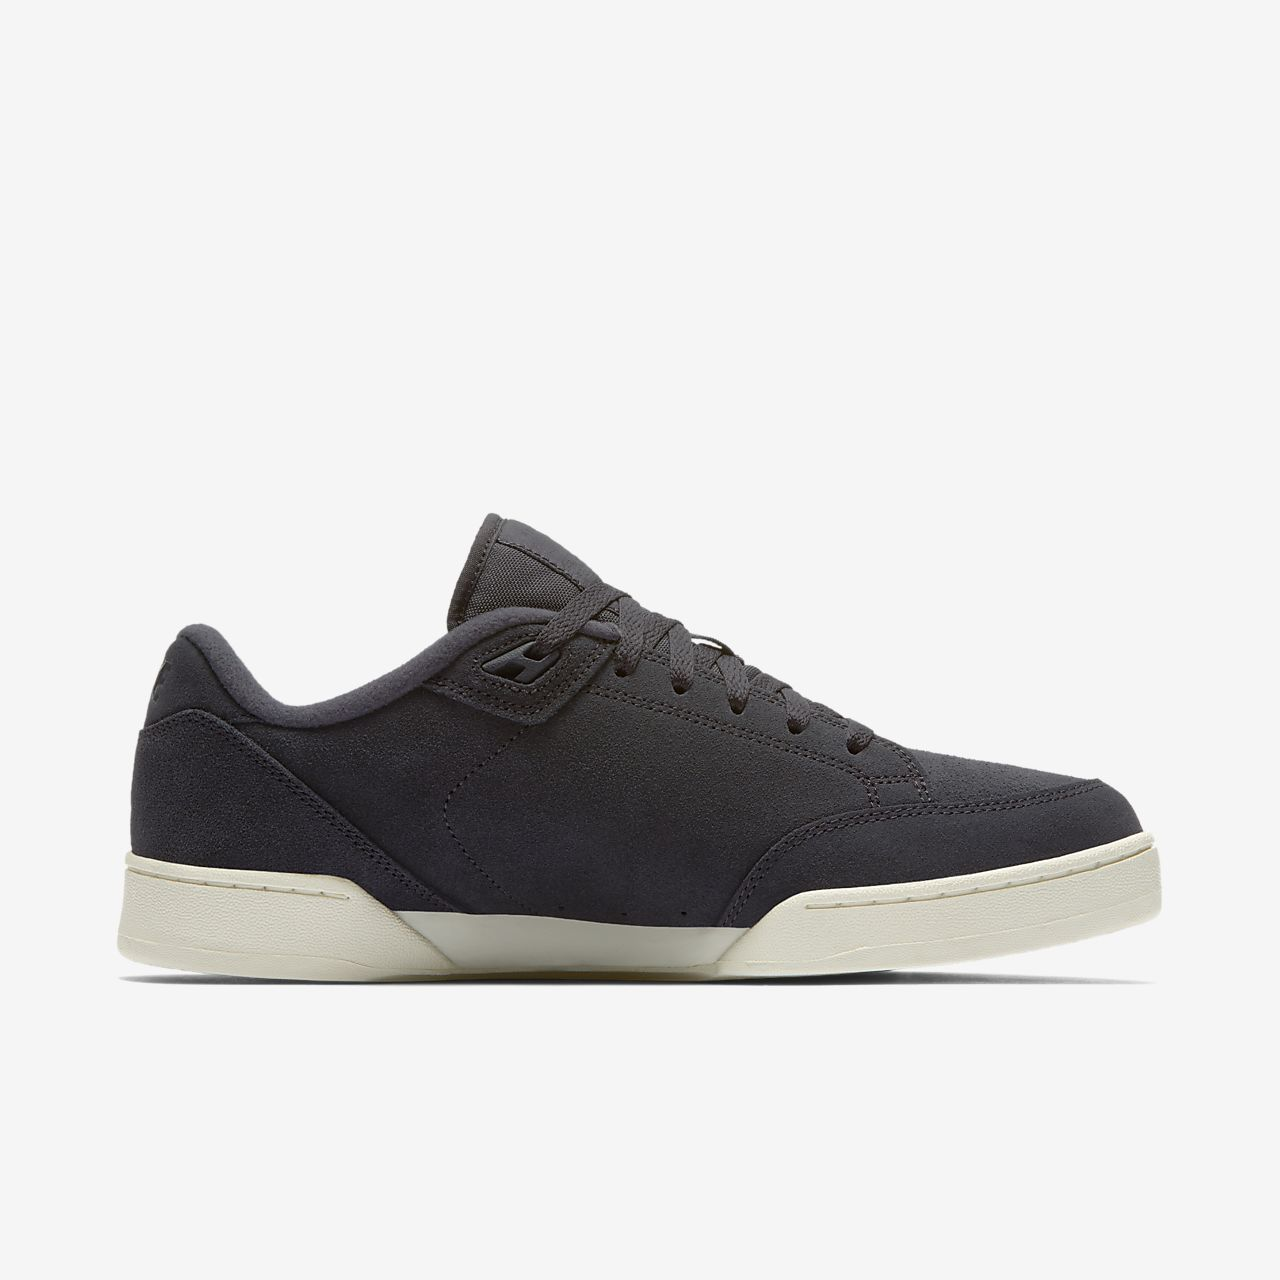 wholesale dealer b888c 08b0b ... Chaussure Nike Grandstand II Suede pour Homme